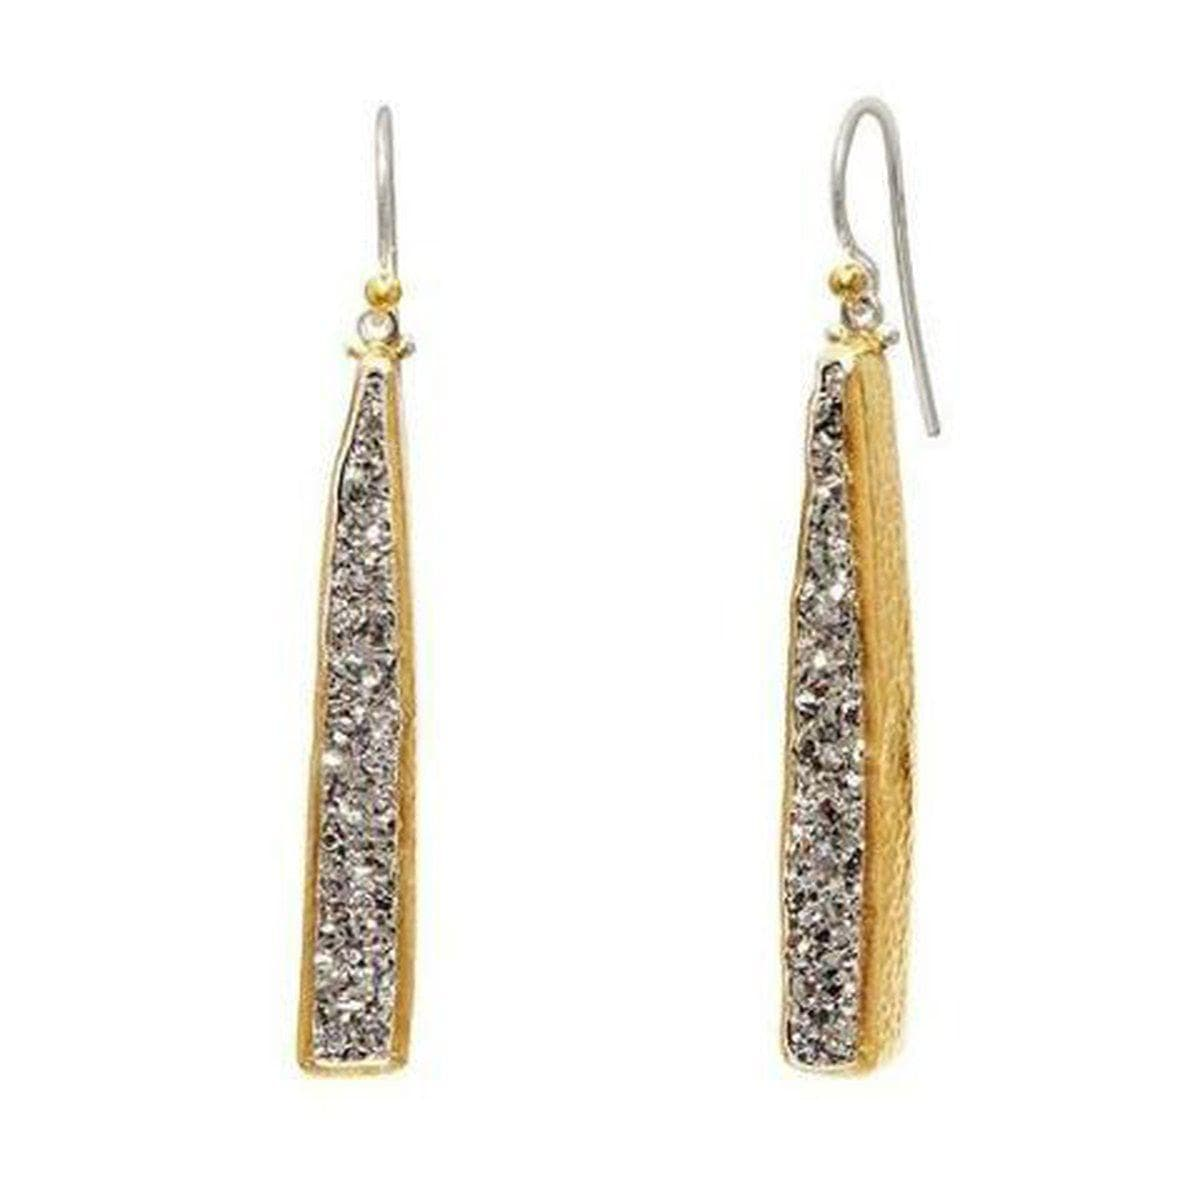 Mystere Sterling Silver Drusy Quartz Earrings - EHSSG-DQ406-DR-DB-GURHAN-Renee Taylor Gallery